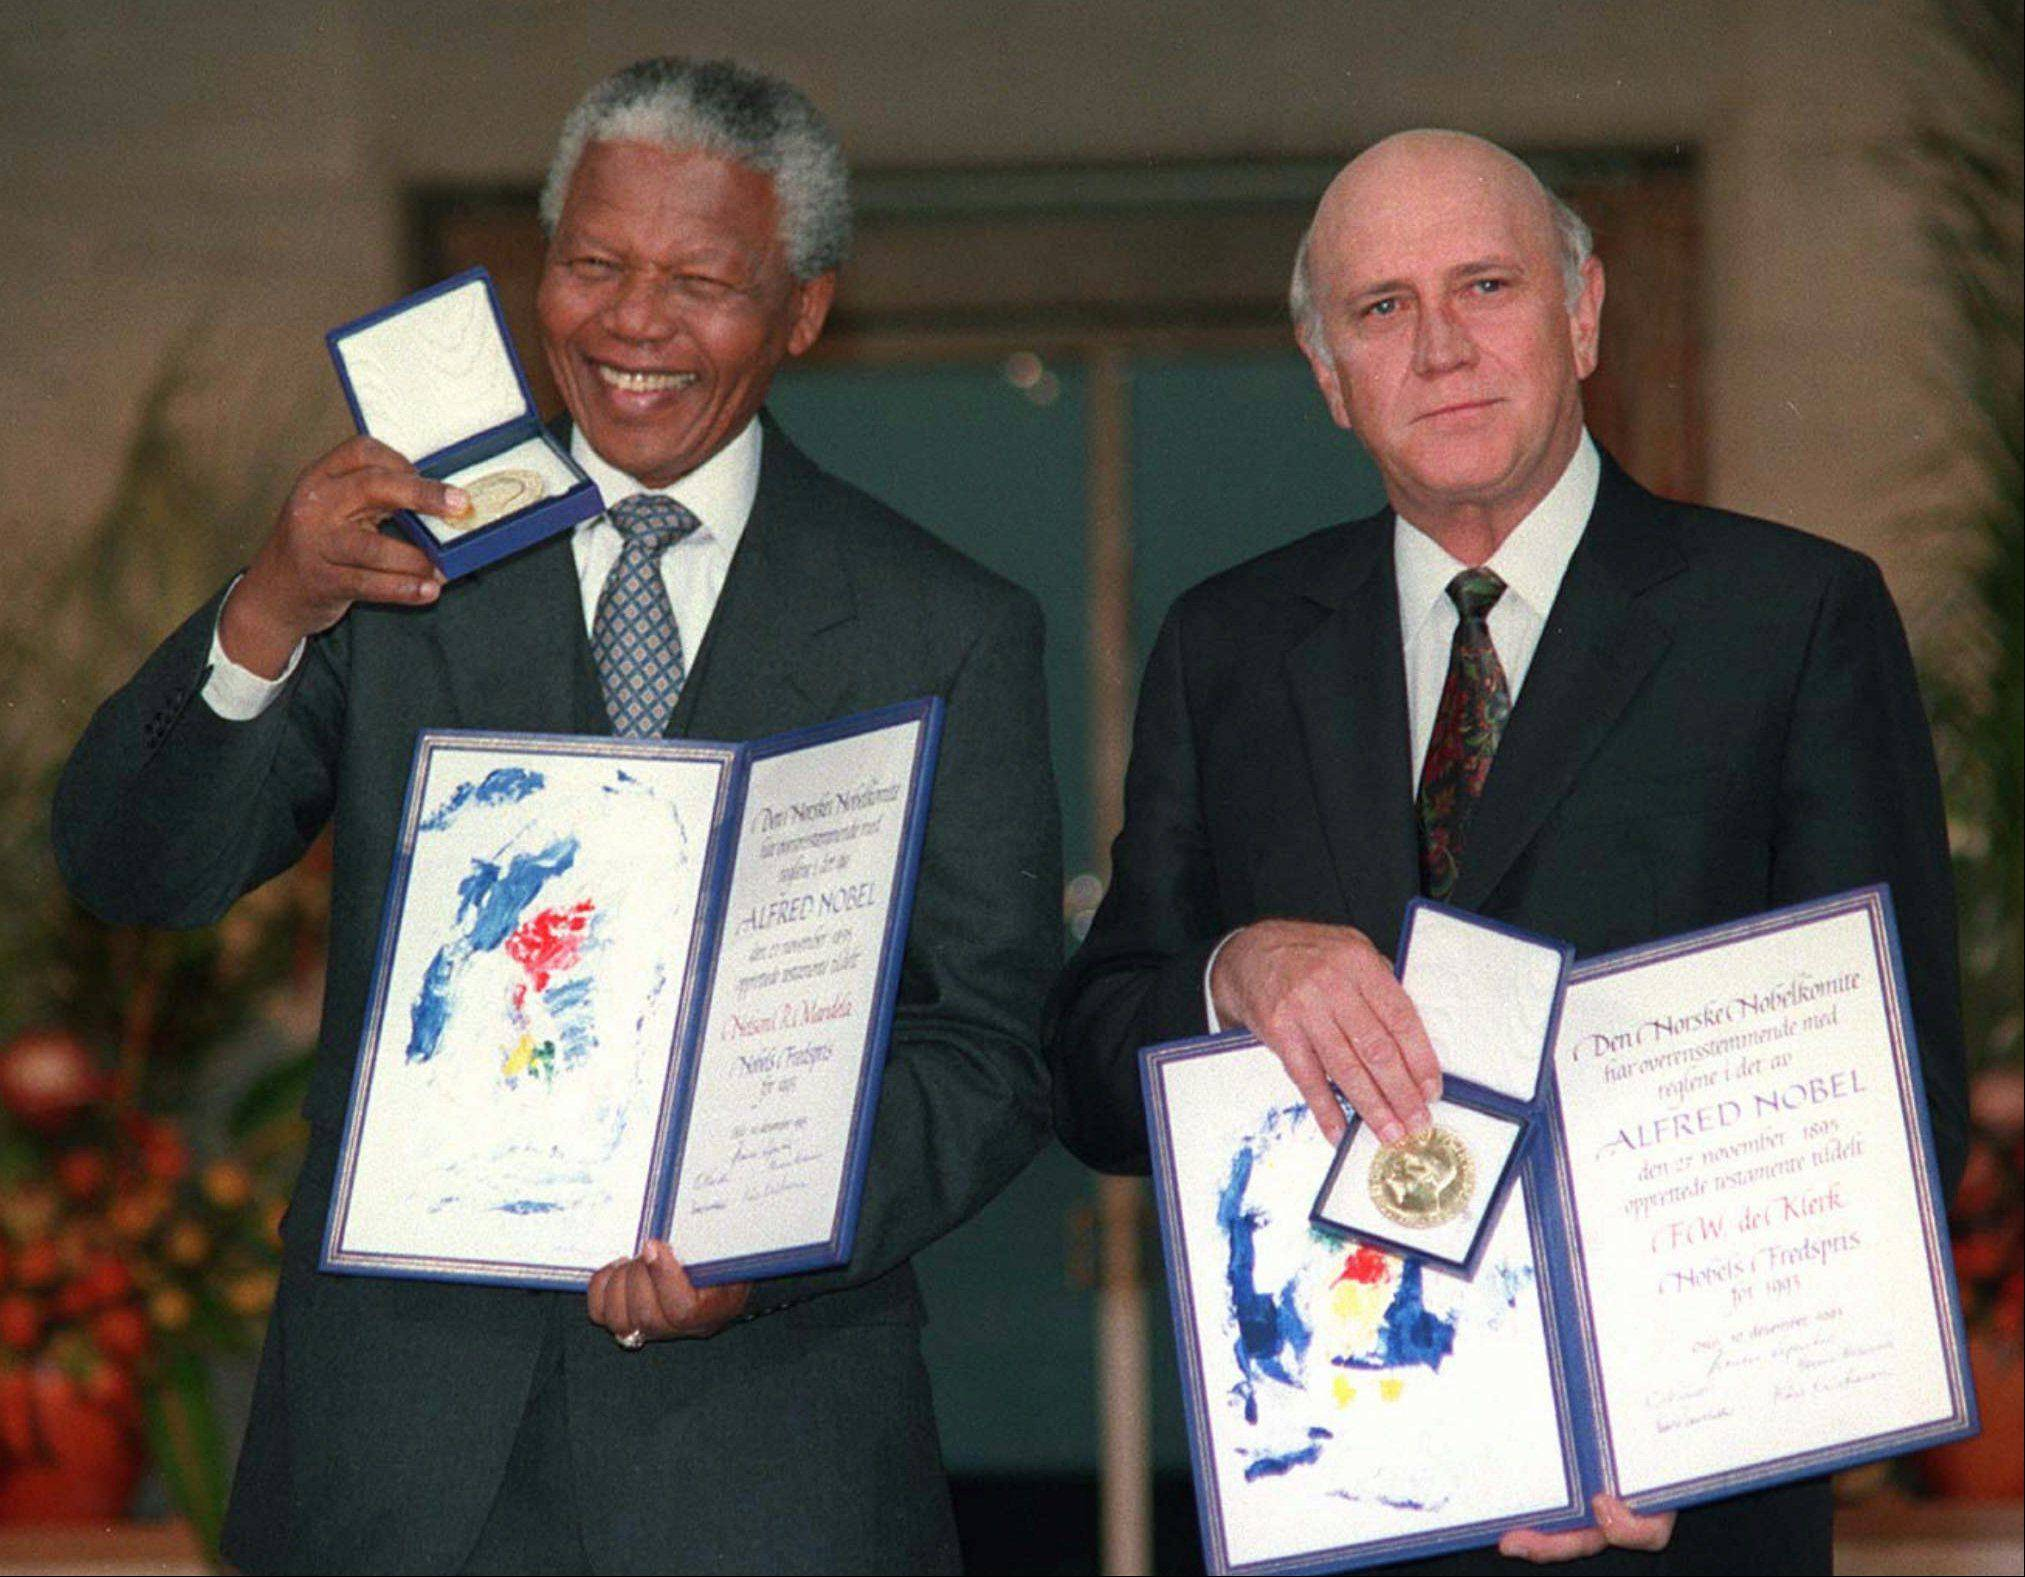 South African Deputy President F.W. de Klerk, right, and South African President Nelson Mandela pose with their Nobel Peace Prize Gold Medal and Diploma, in Oslo, Dec. 10, 1993.